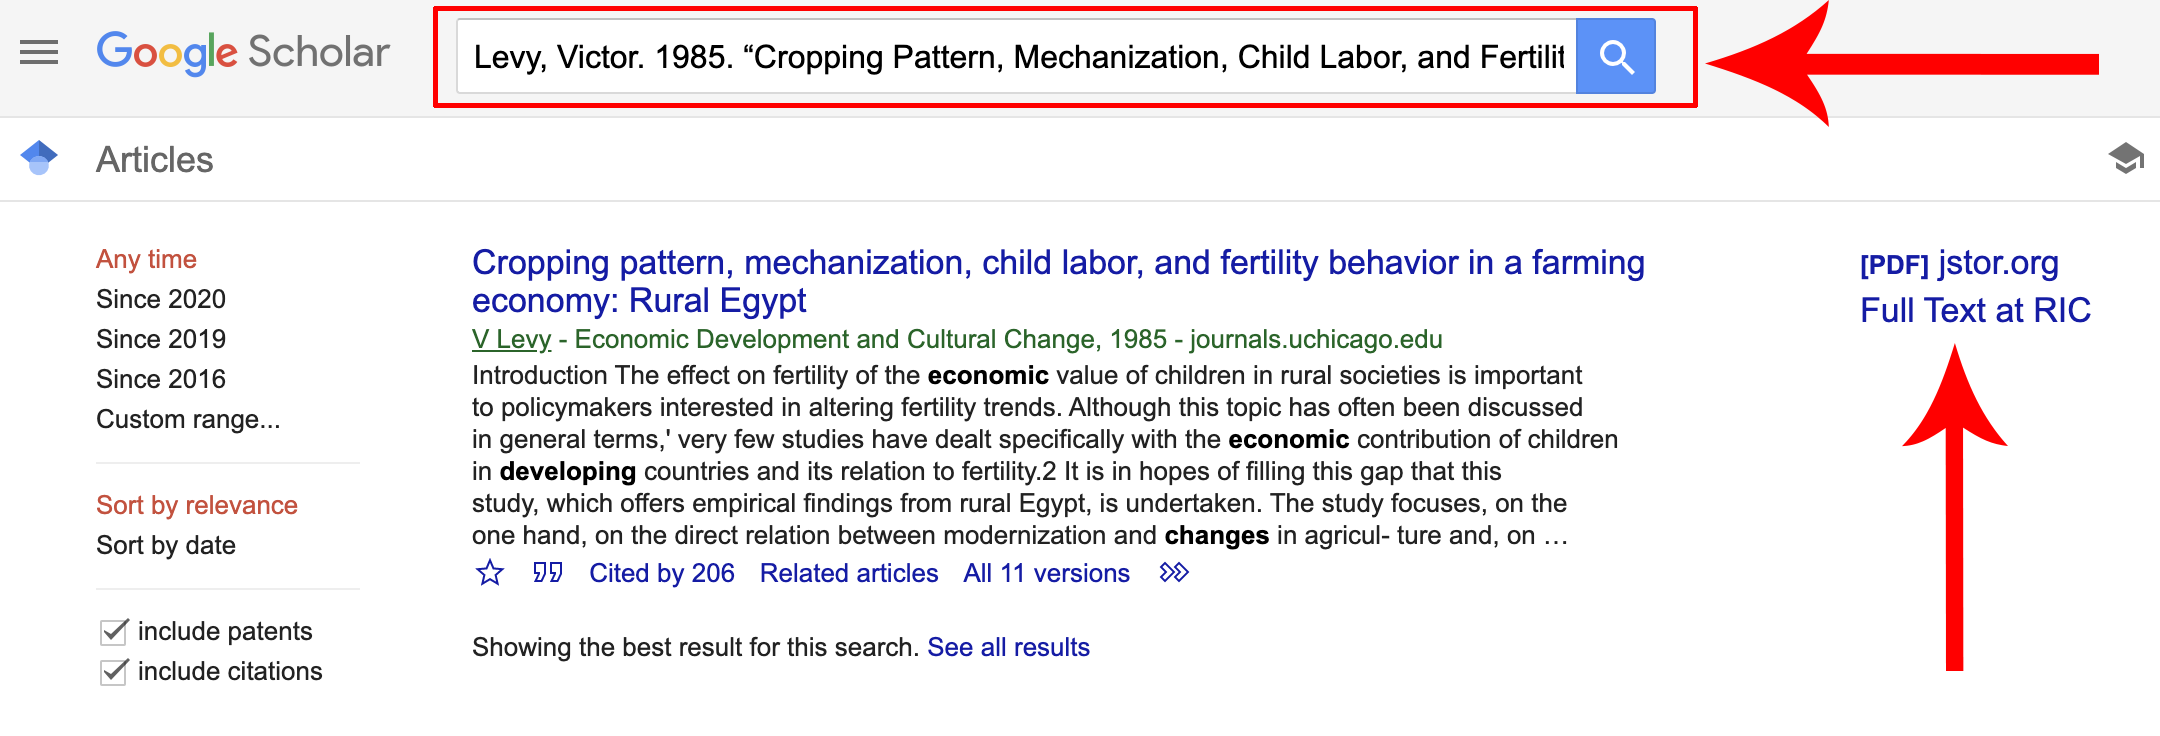 Google Scholar Citation Search